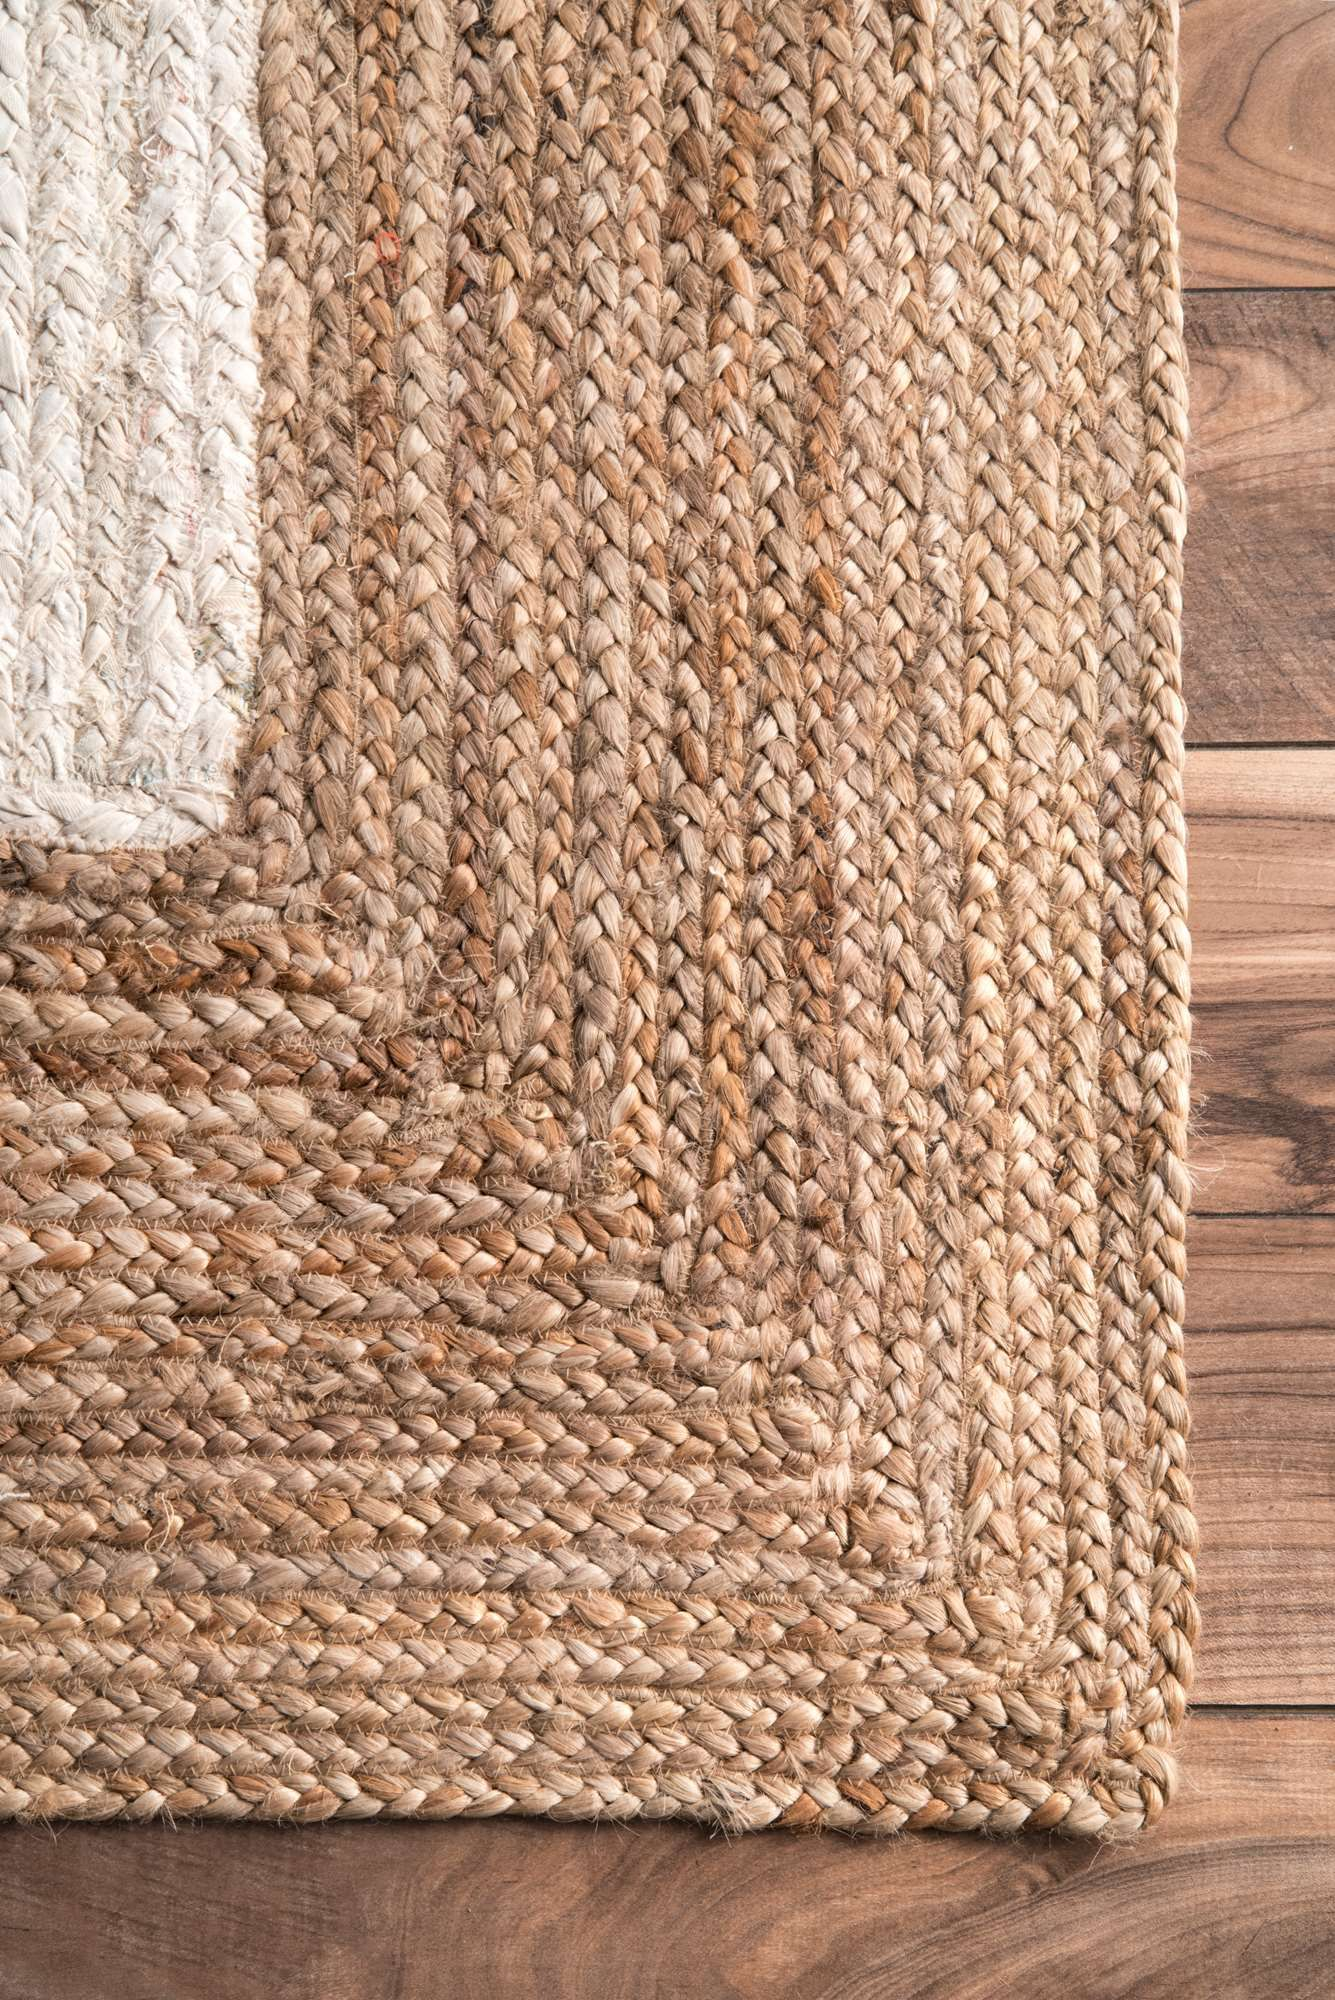 Aucklandcl01 solid wide border rug area rugs jute area